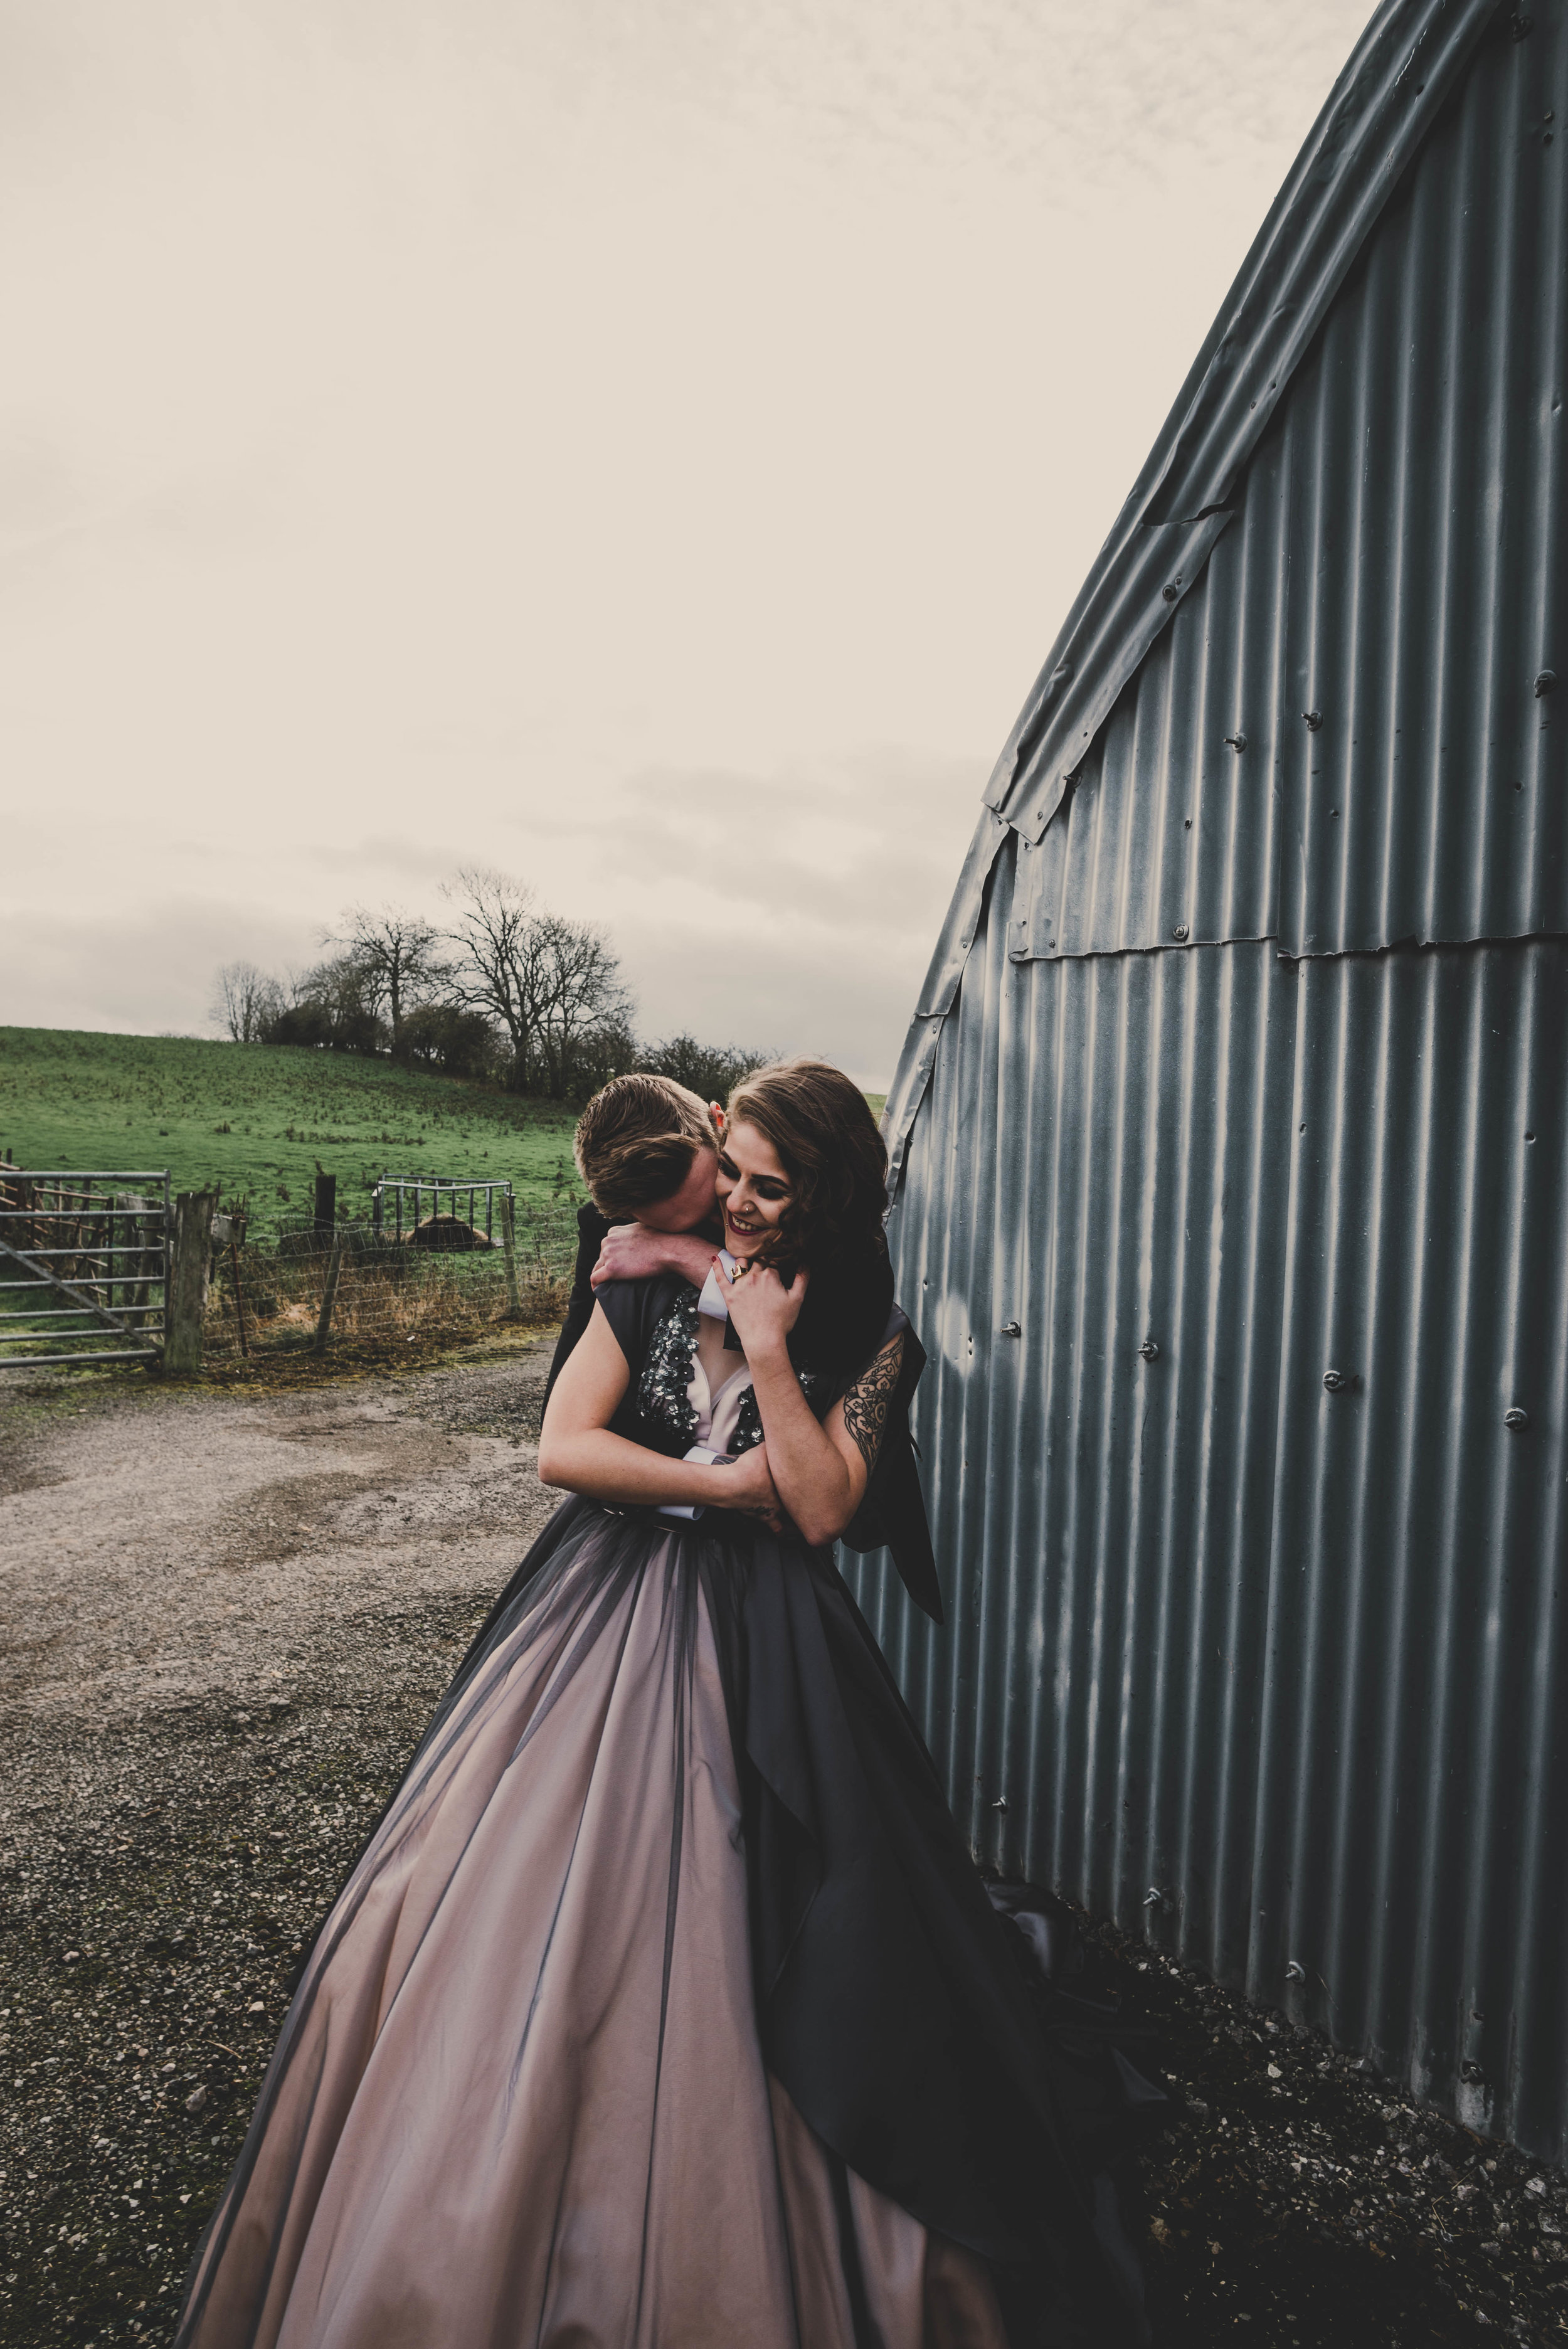 edgy-wedding-photography-in-lake-district (6).jpg